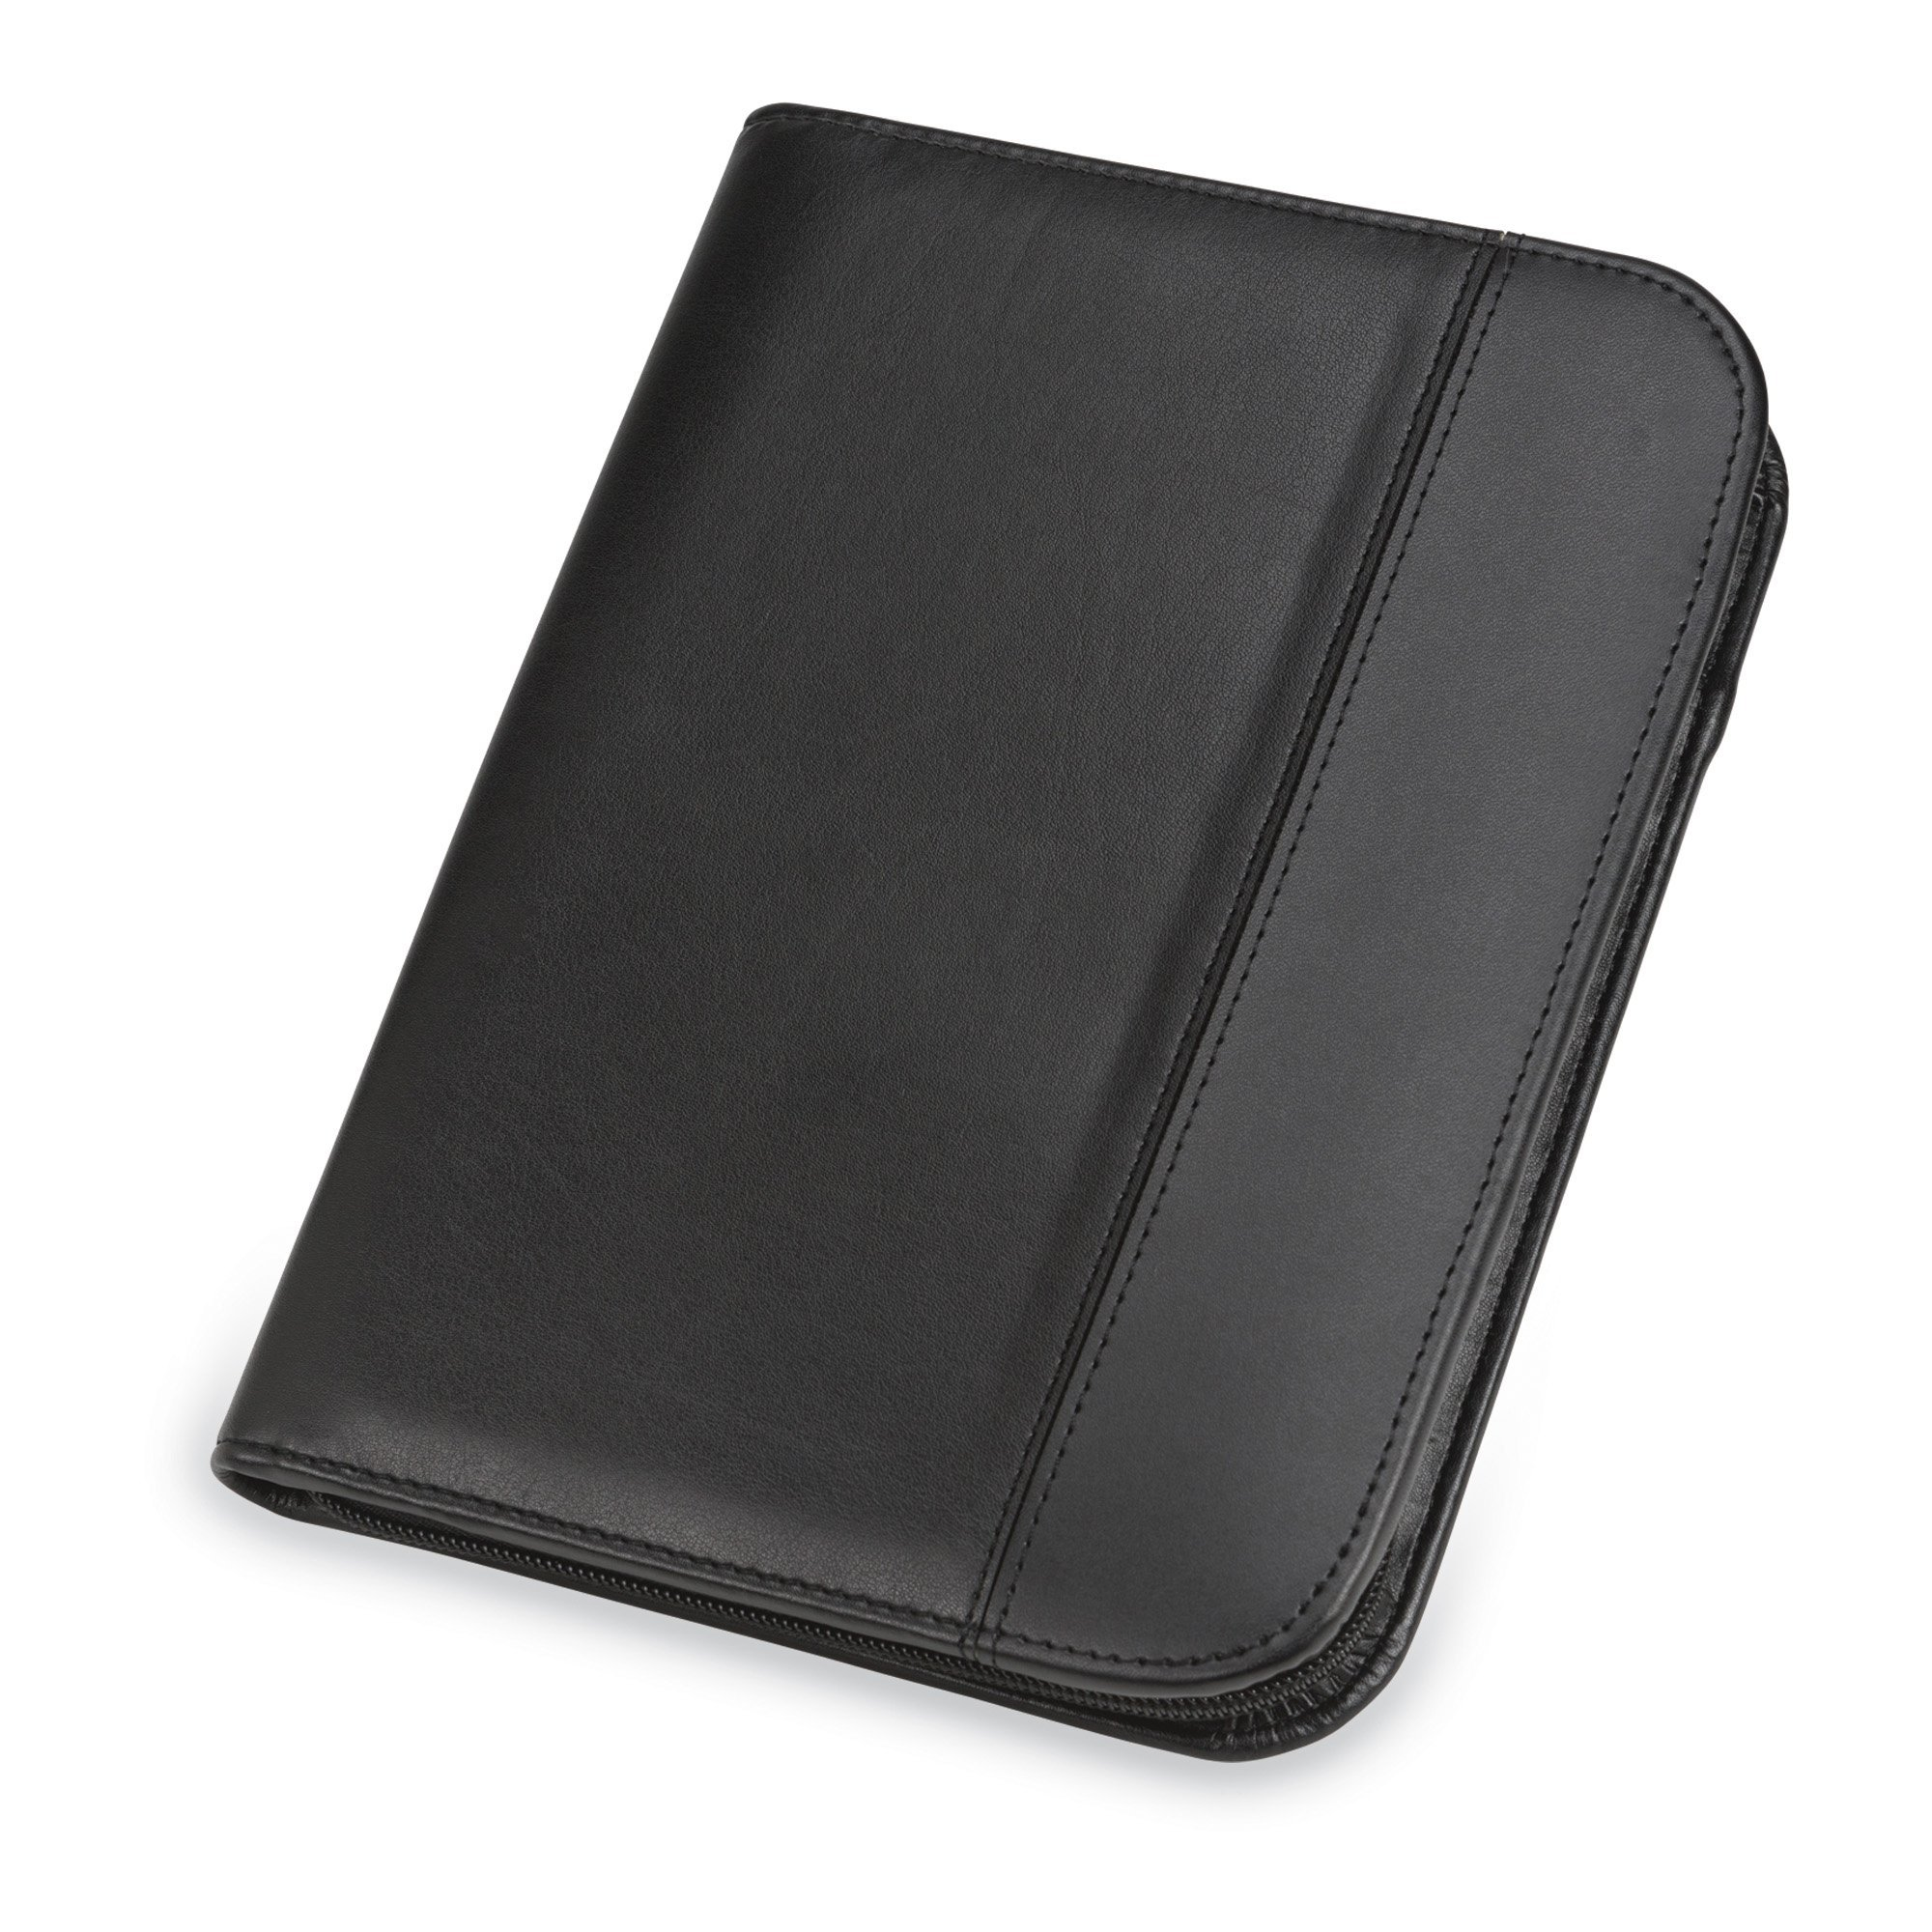 Samsill Leather Trim Business Junior Padfolio/Interview Portfolio with Zippered Closure, 5 inch x 8 inch Writing Pad Included, Black